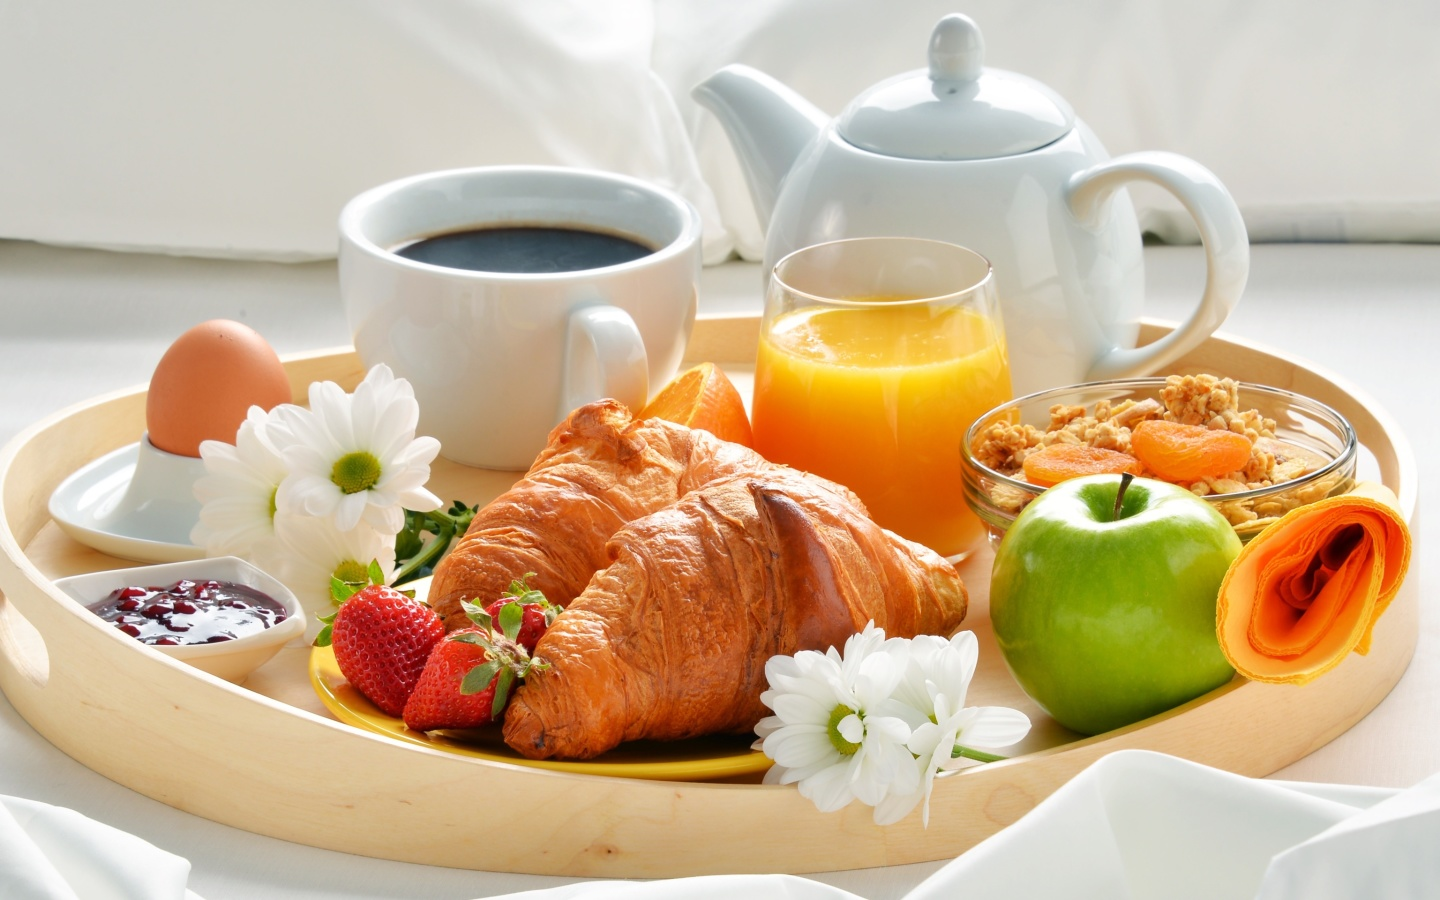 https://f.vividscreen.info/soft/5948eb316203f0d6a486068c6ed48cbe/Breakfast-with-croissant-and-musli-1440x900.jpg